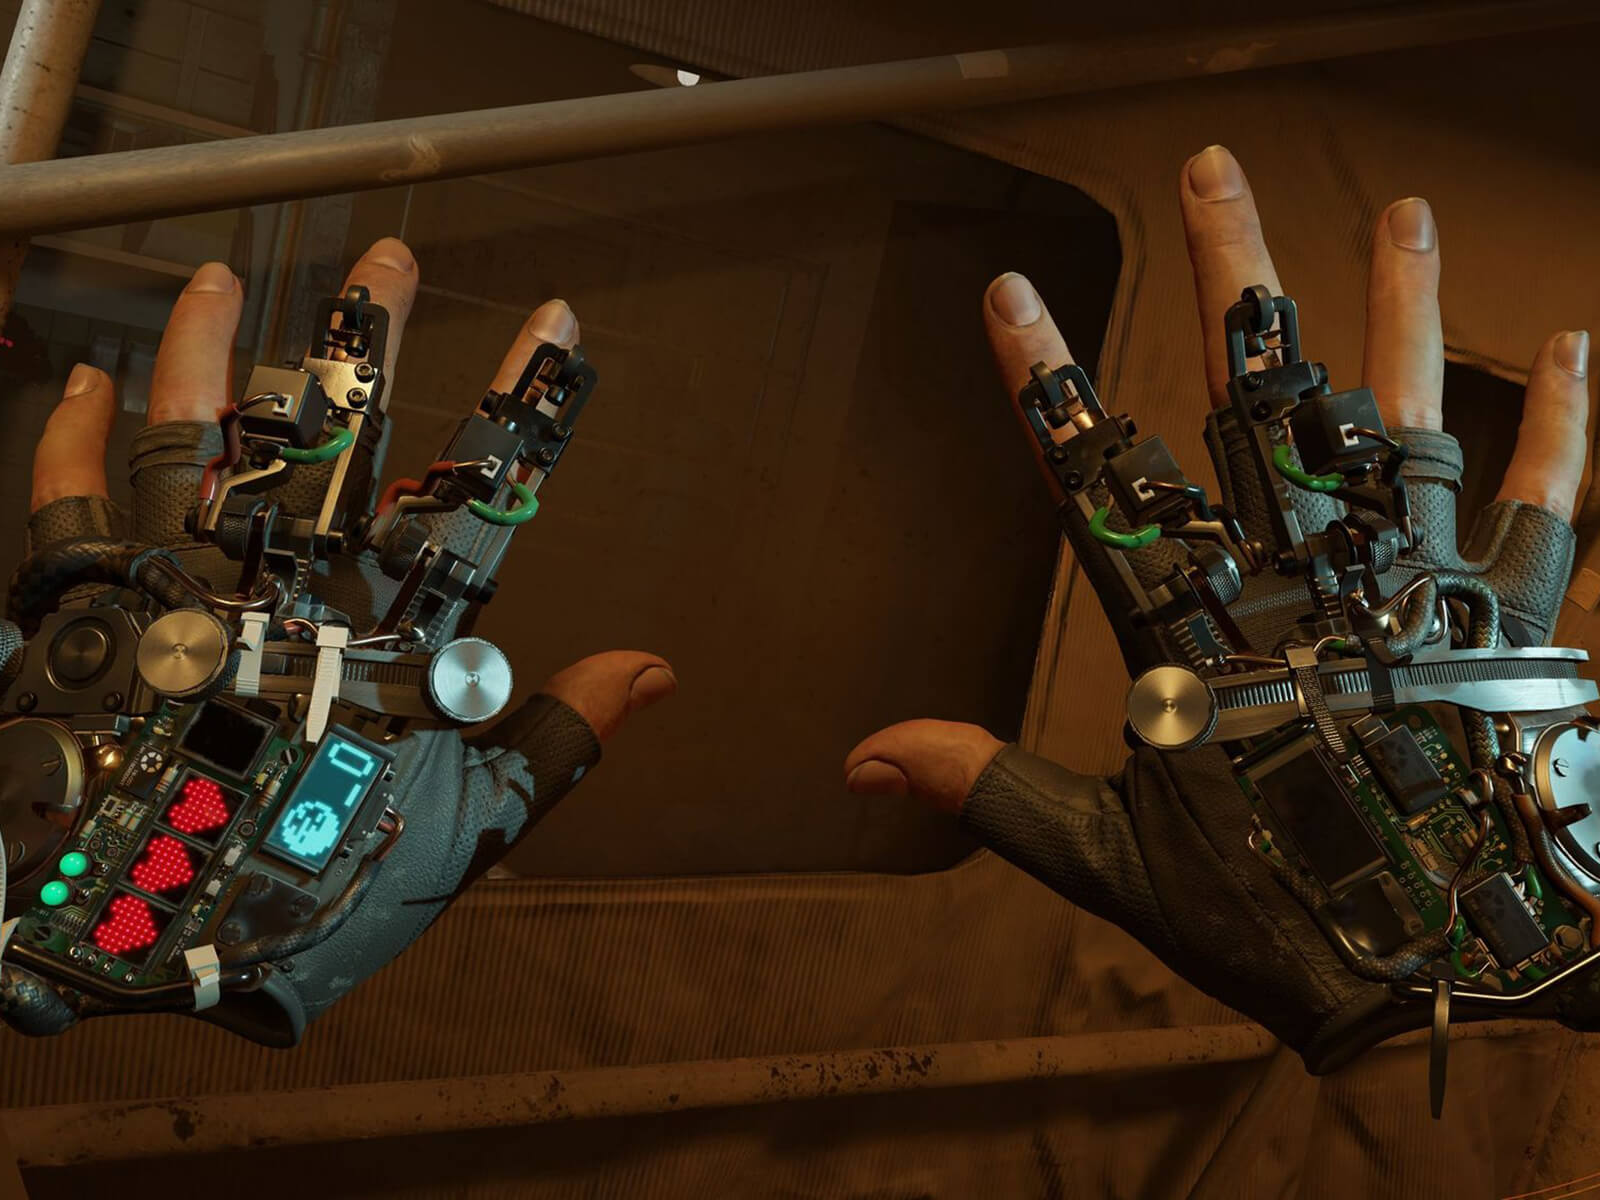 Half-Life: Alyx screenshot – close-up view of the 'gravity gloves' device